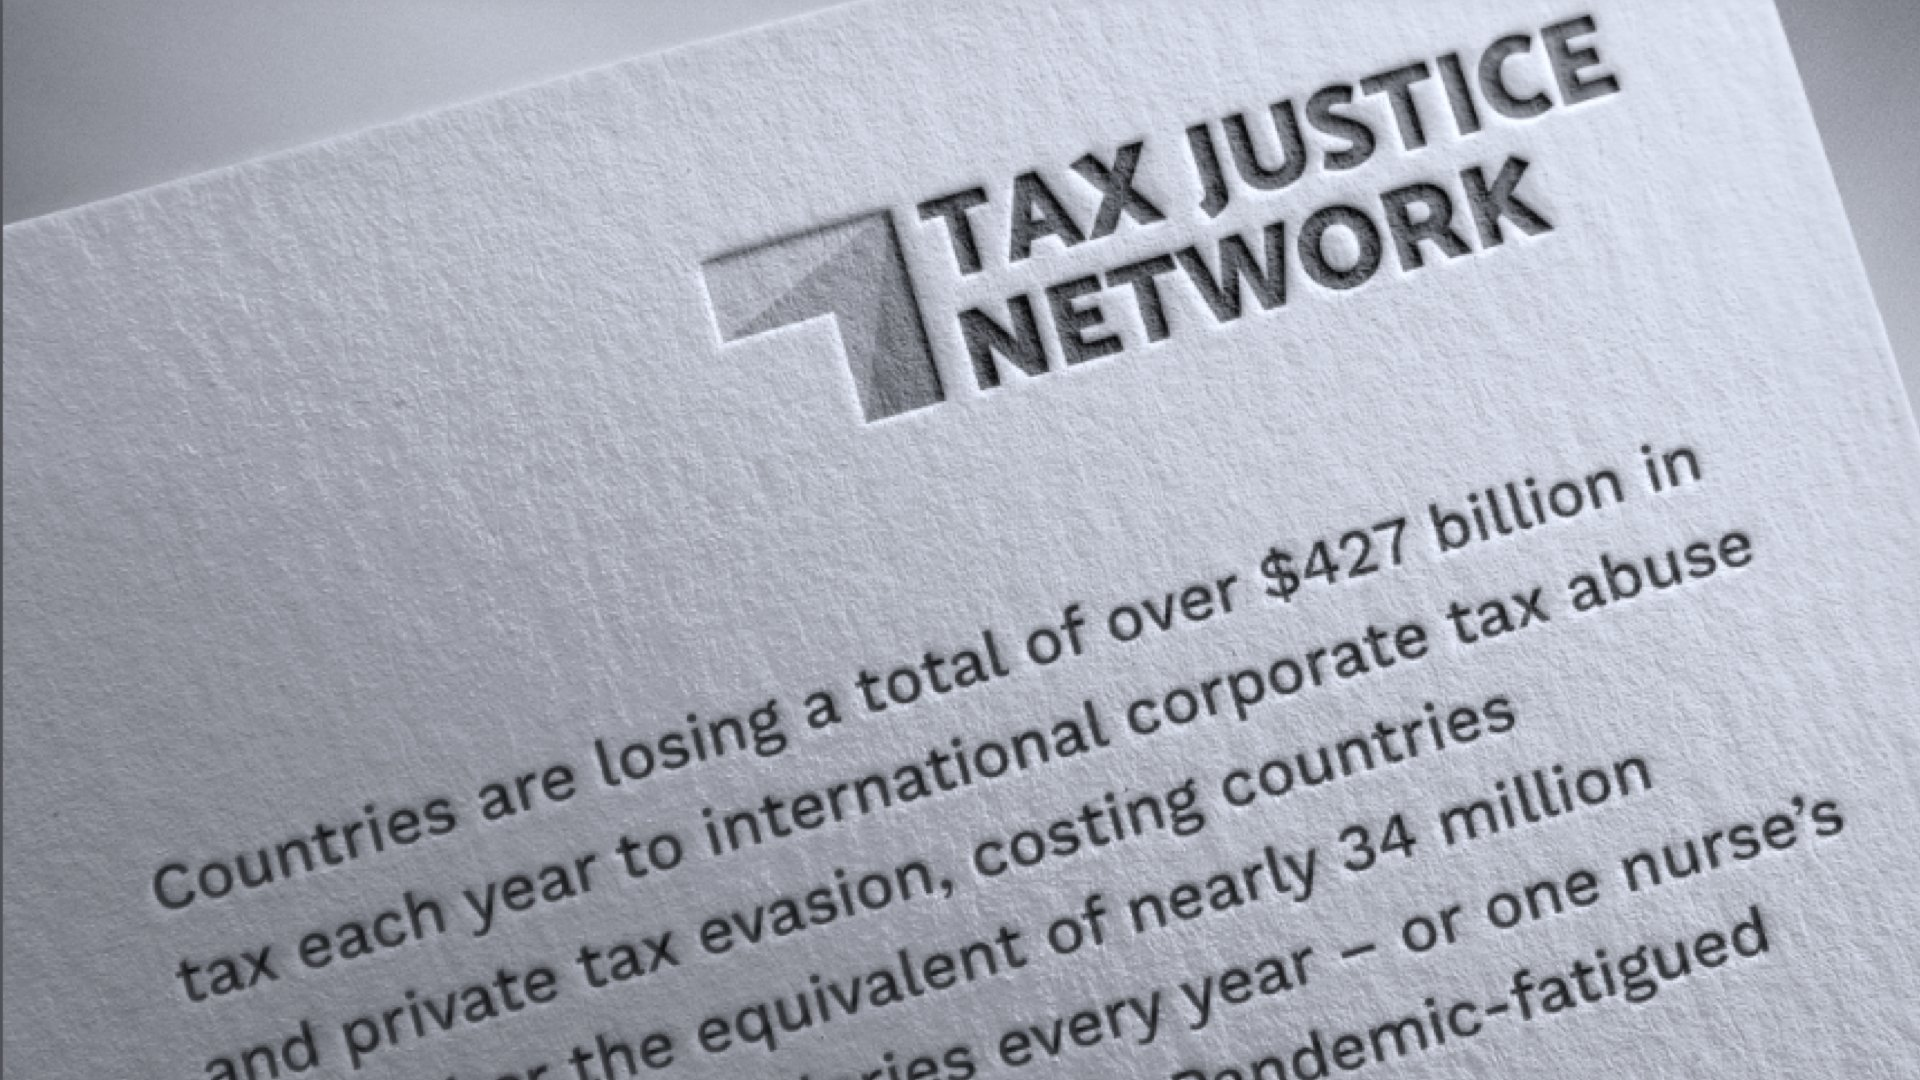 Tax Justice Network 1605973337 - Elite Tax Evasion Crippling the Global Common Good